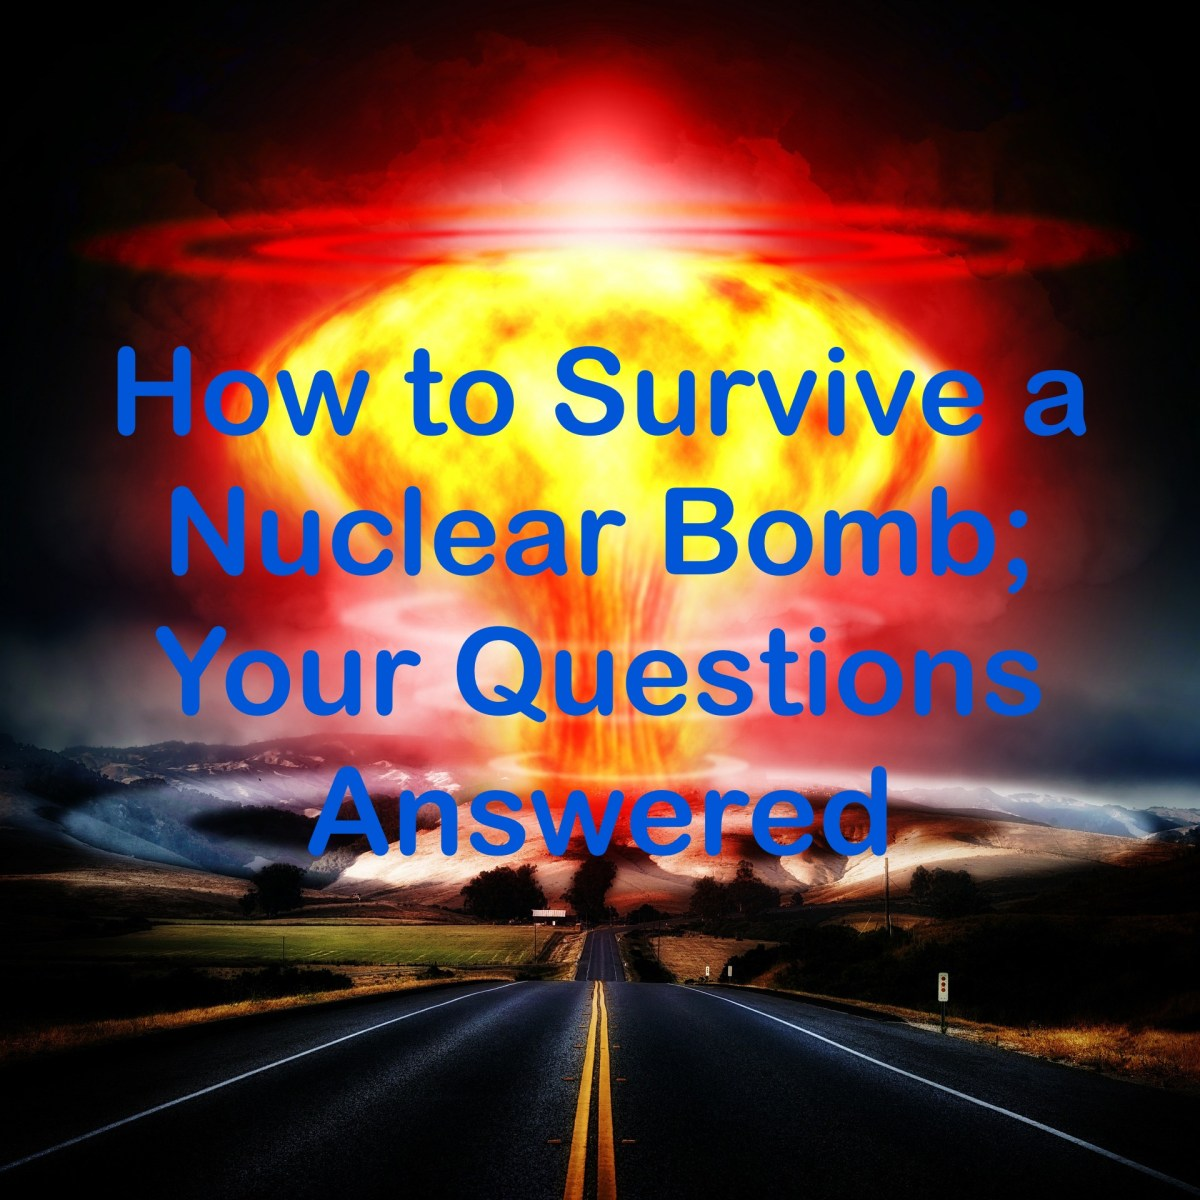 How to Survive a Nuclear Bomb; Your Questions Answered